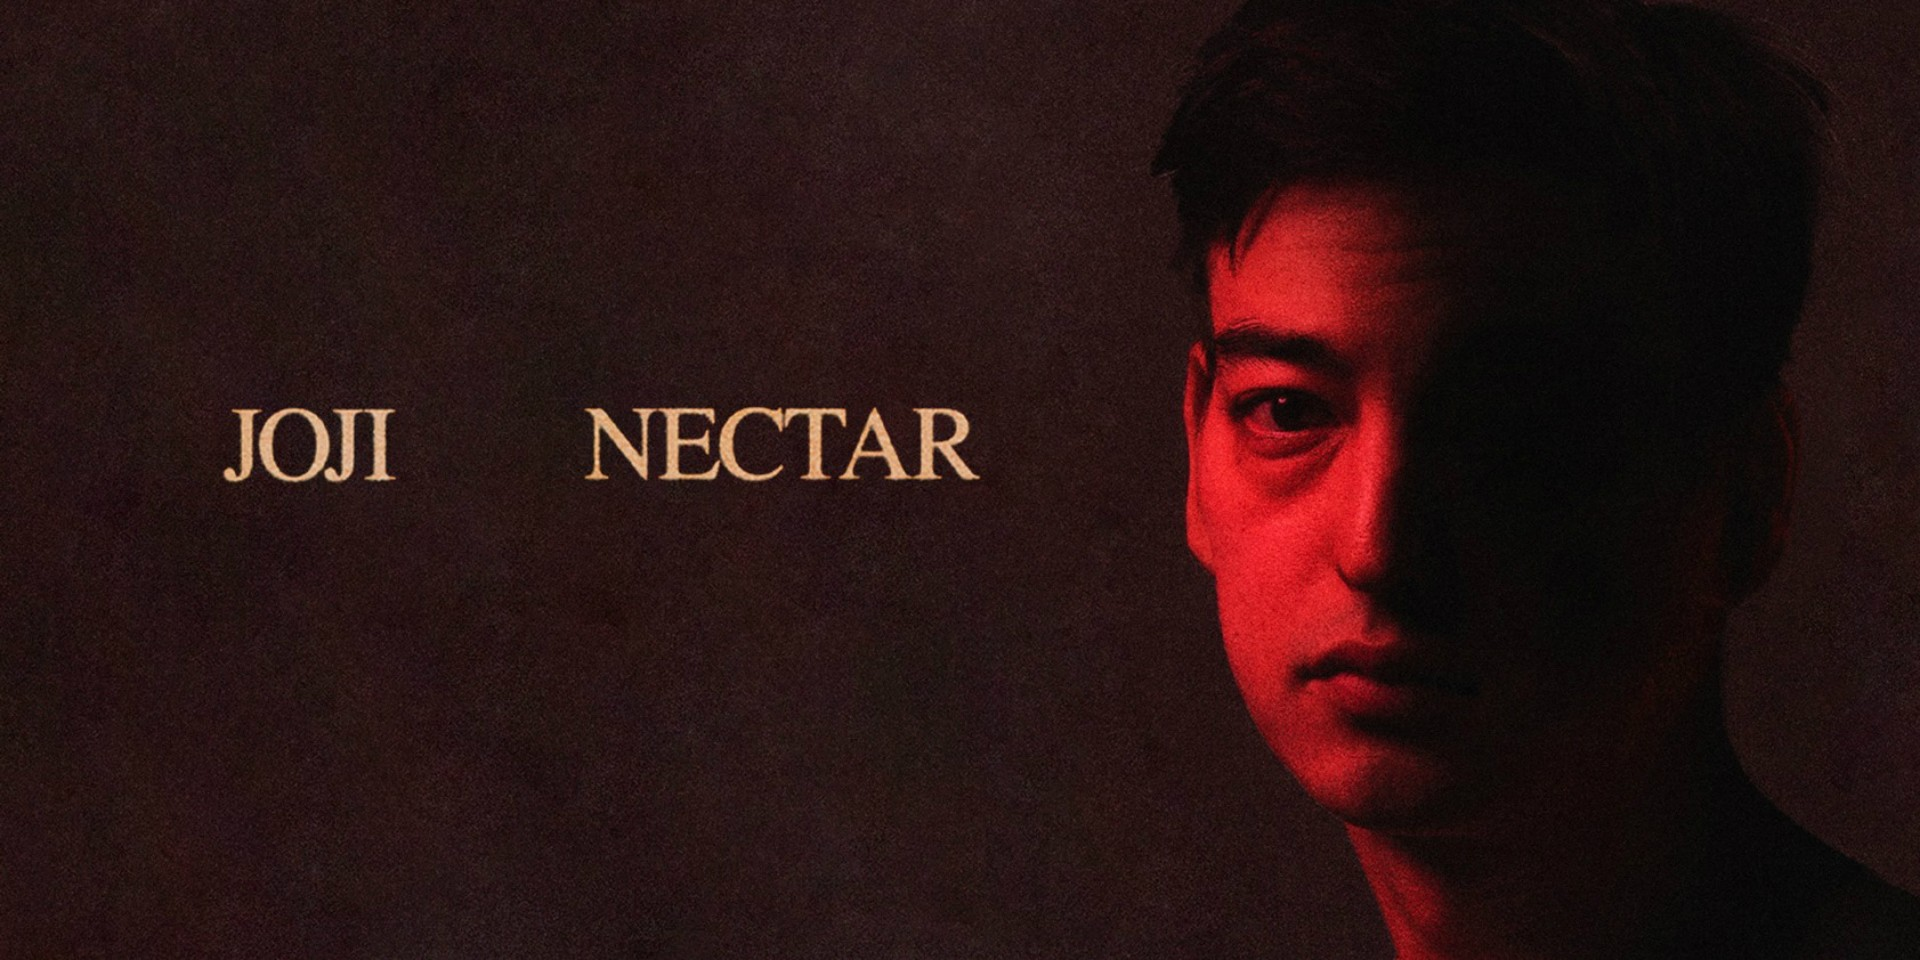 Joji's sophomore album NECTAR is finally here – listen